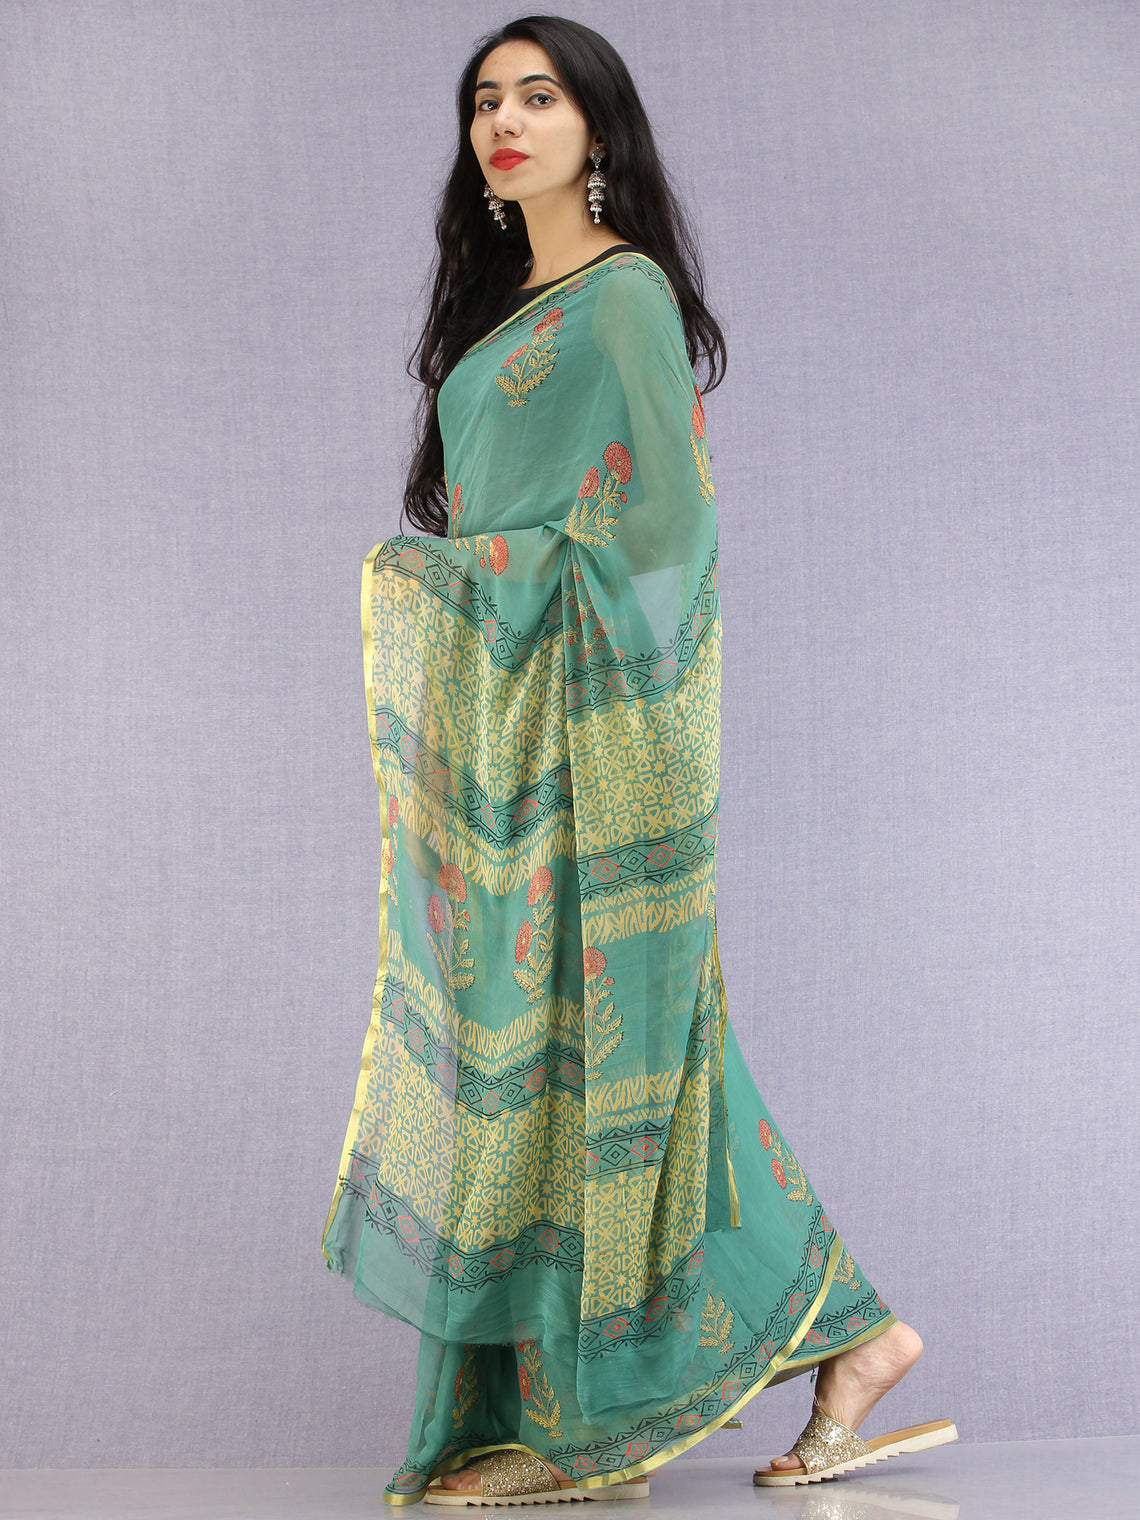 Green Red Yellow Hand Block Printed Chiffon Saree with Zari Border - S031704617